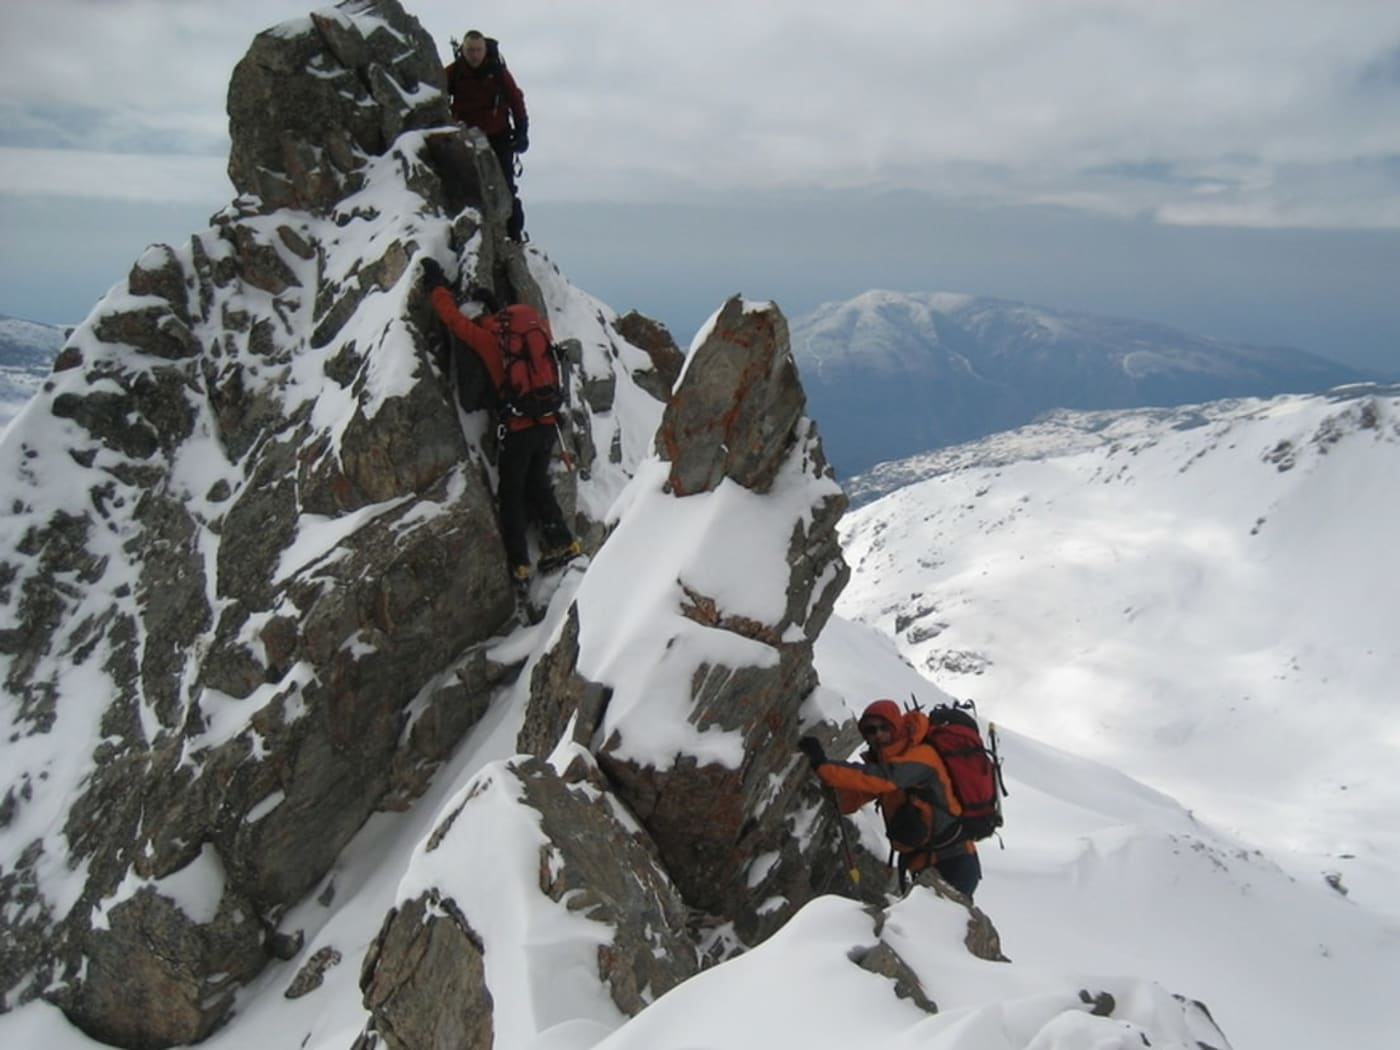 The ridges of the Sierra Nevada are alpine especially in the winter months